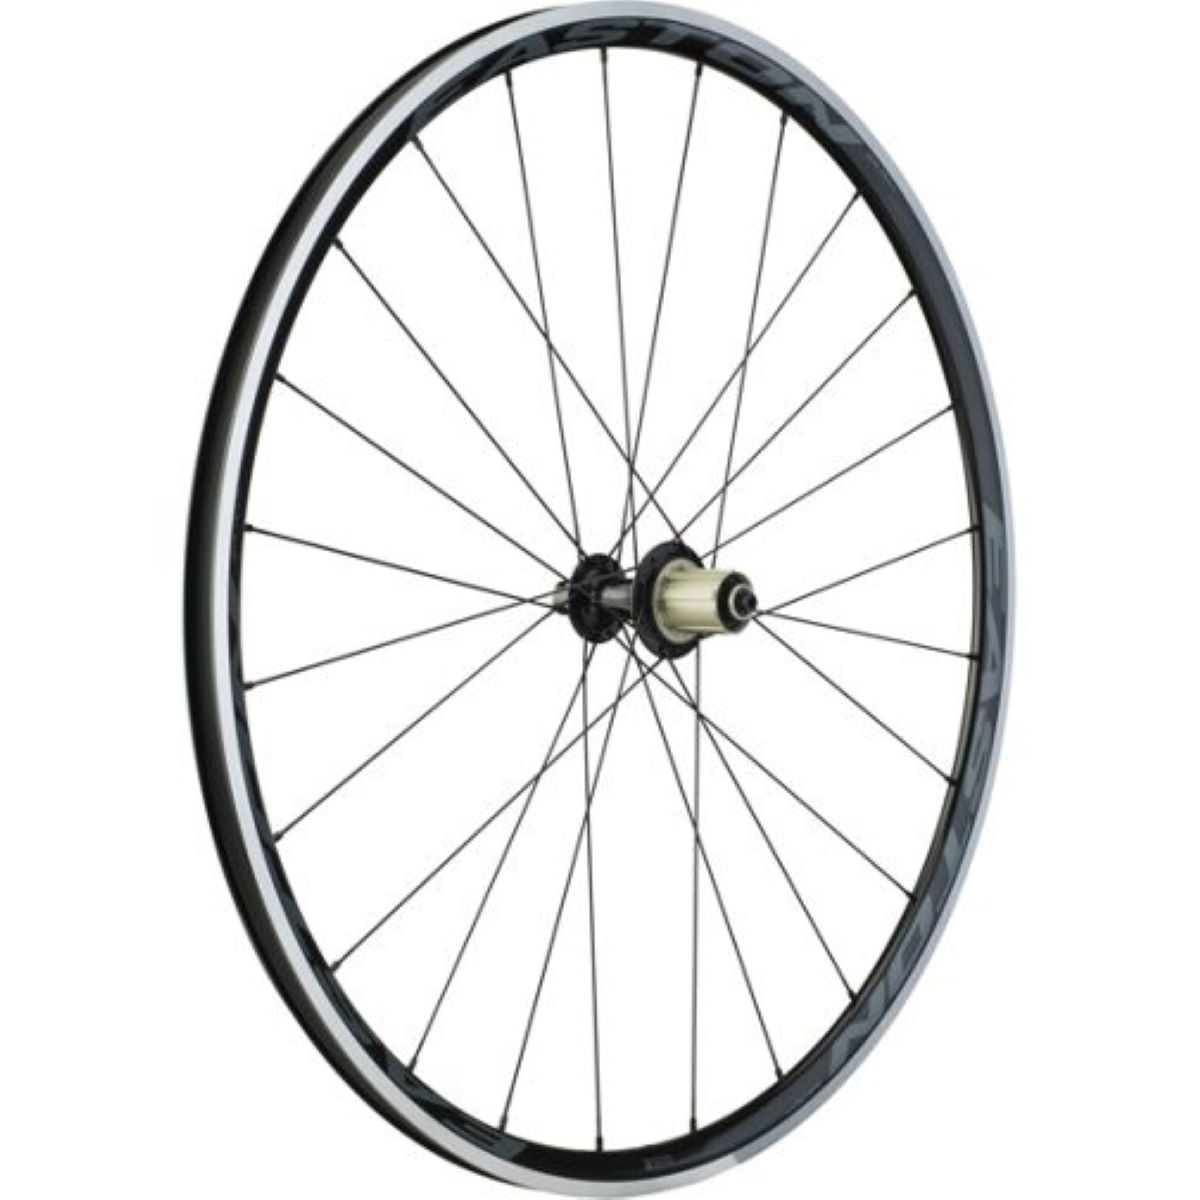 Easton EA 70 SL Alloy Clincher Rear Road Wheel   Performance Wheels